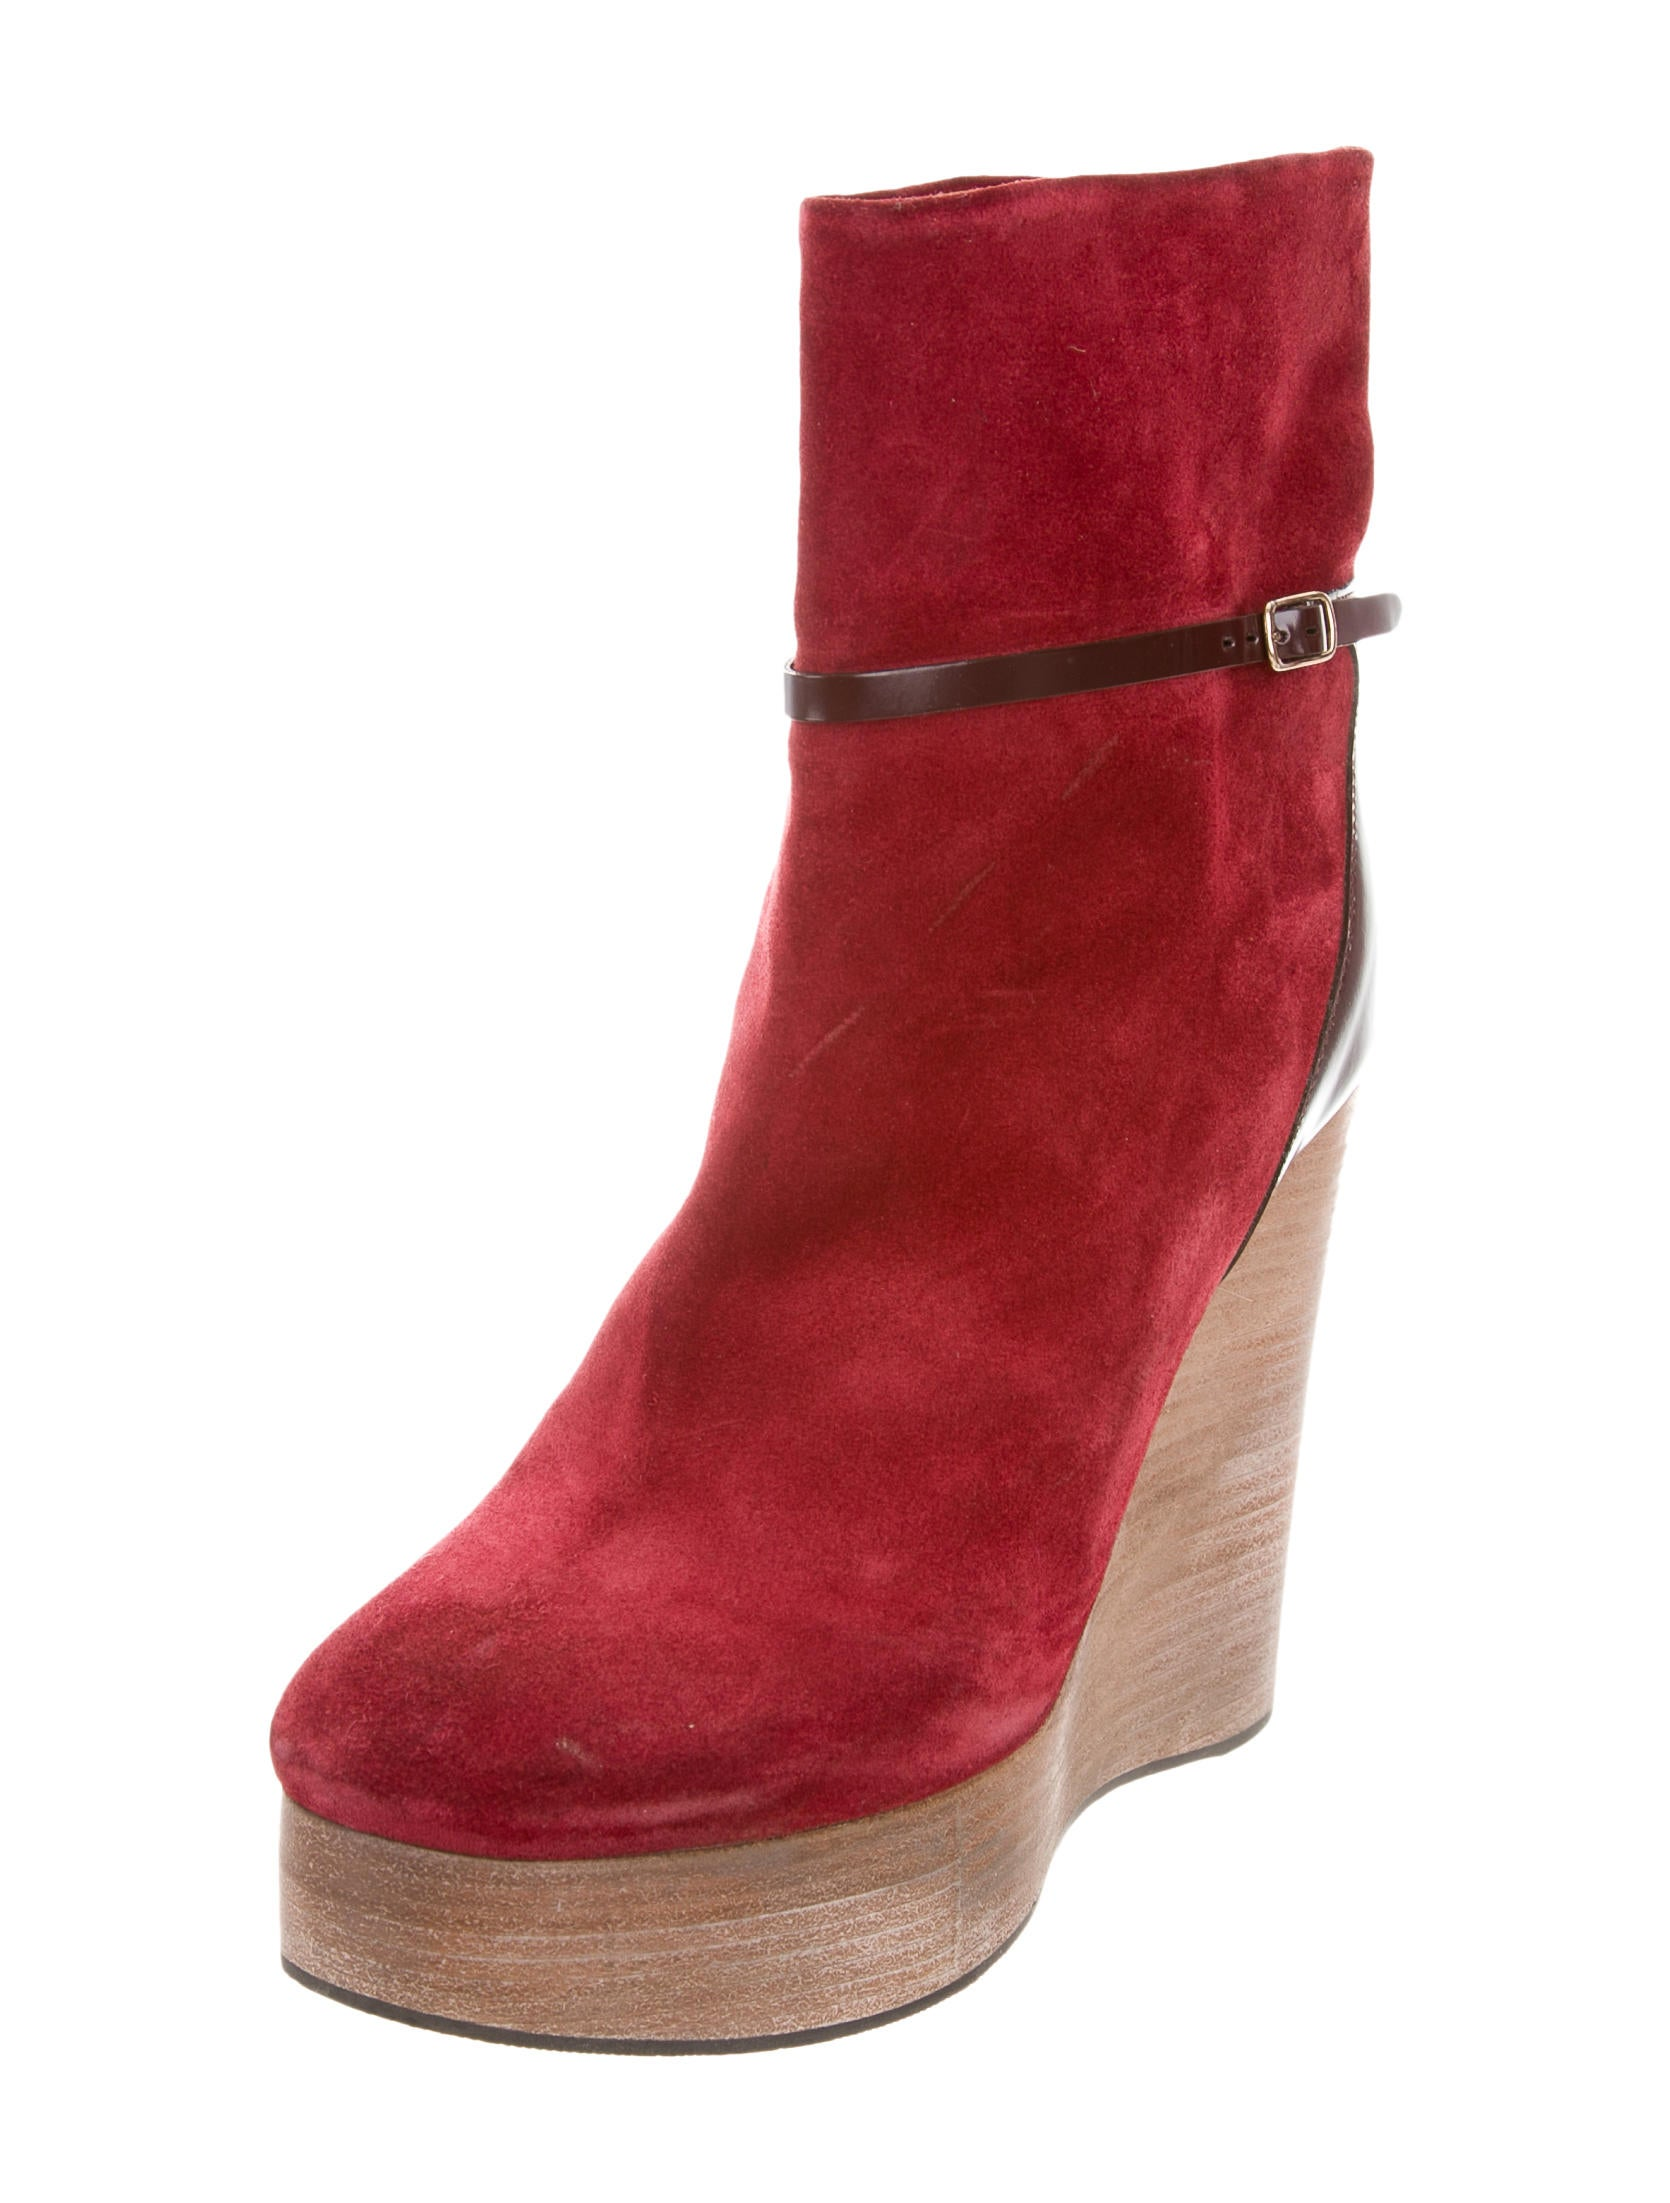 chlo 233 platform wedge ankle boots shoes chl61713 the